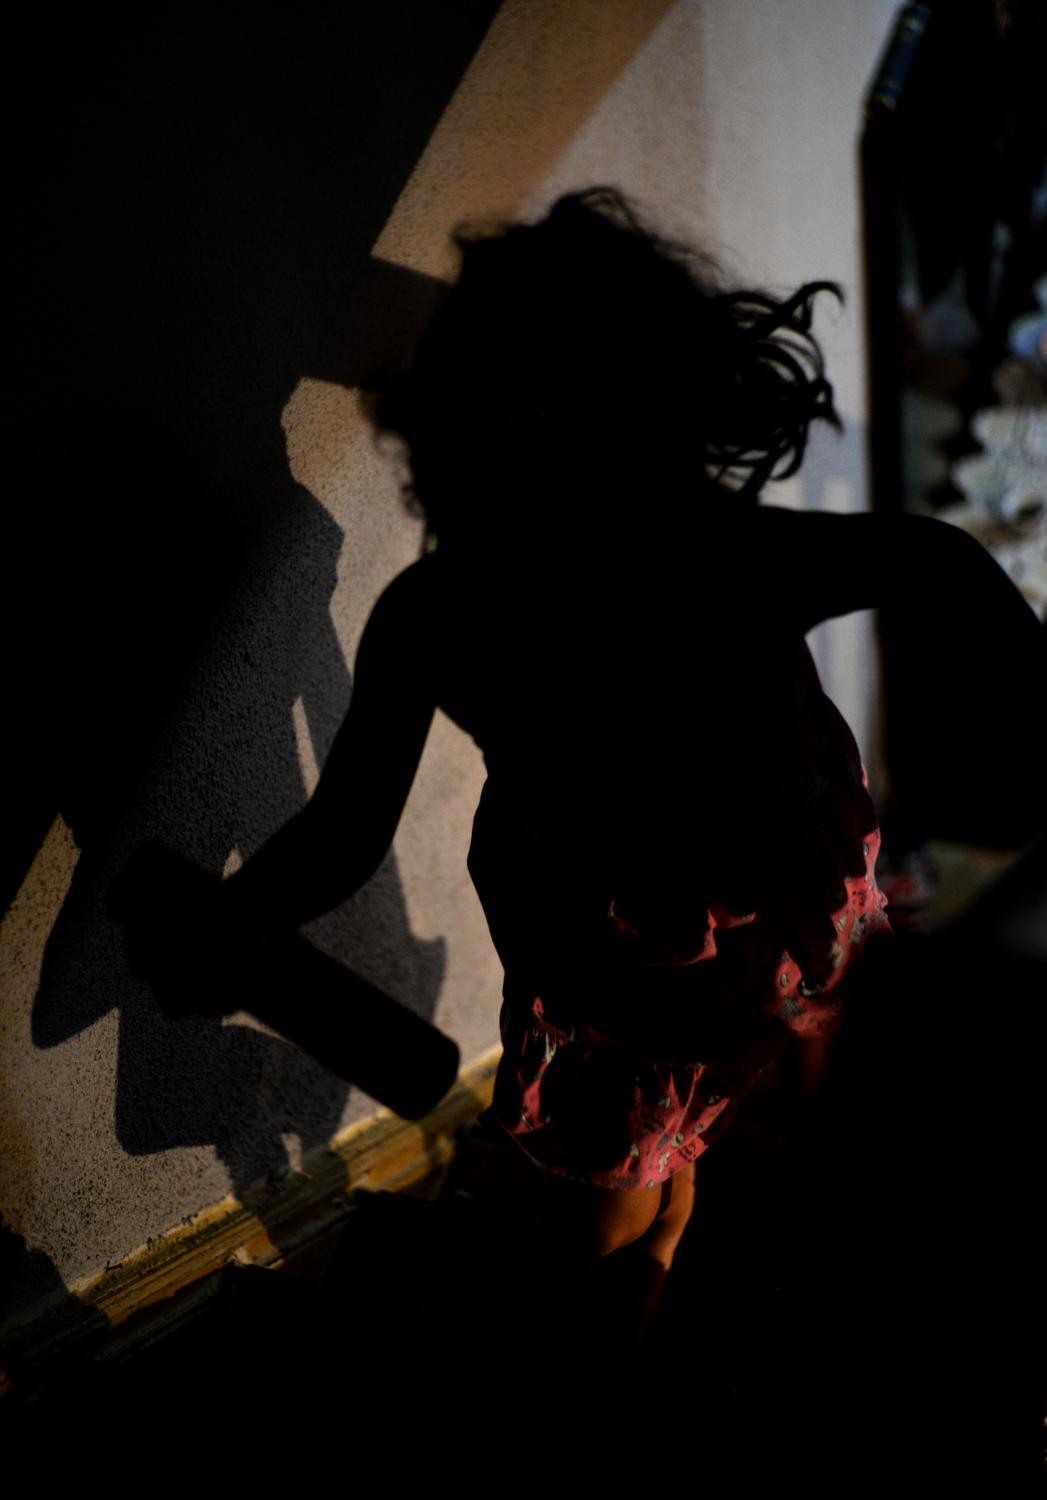 Lamar Ibrahim, 8, runs up the stairs to grab toys on Tuesday, Dec. 1, 2020, in Santo Andre, Sao Paulo State, Brazil. Lamar and her sister Celin Ibrahim, 7, were asked by their mother, Rama AlOmari, to clean their toy room after finishing playing.